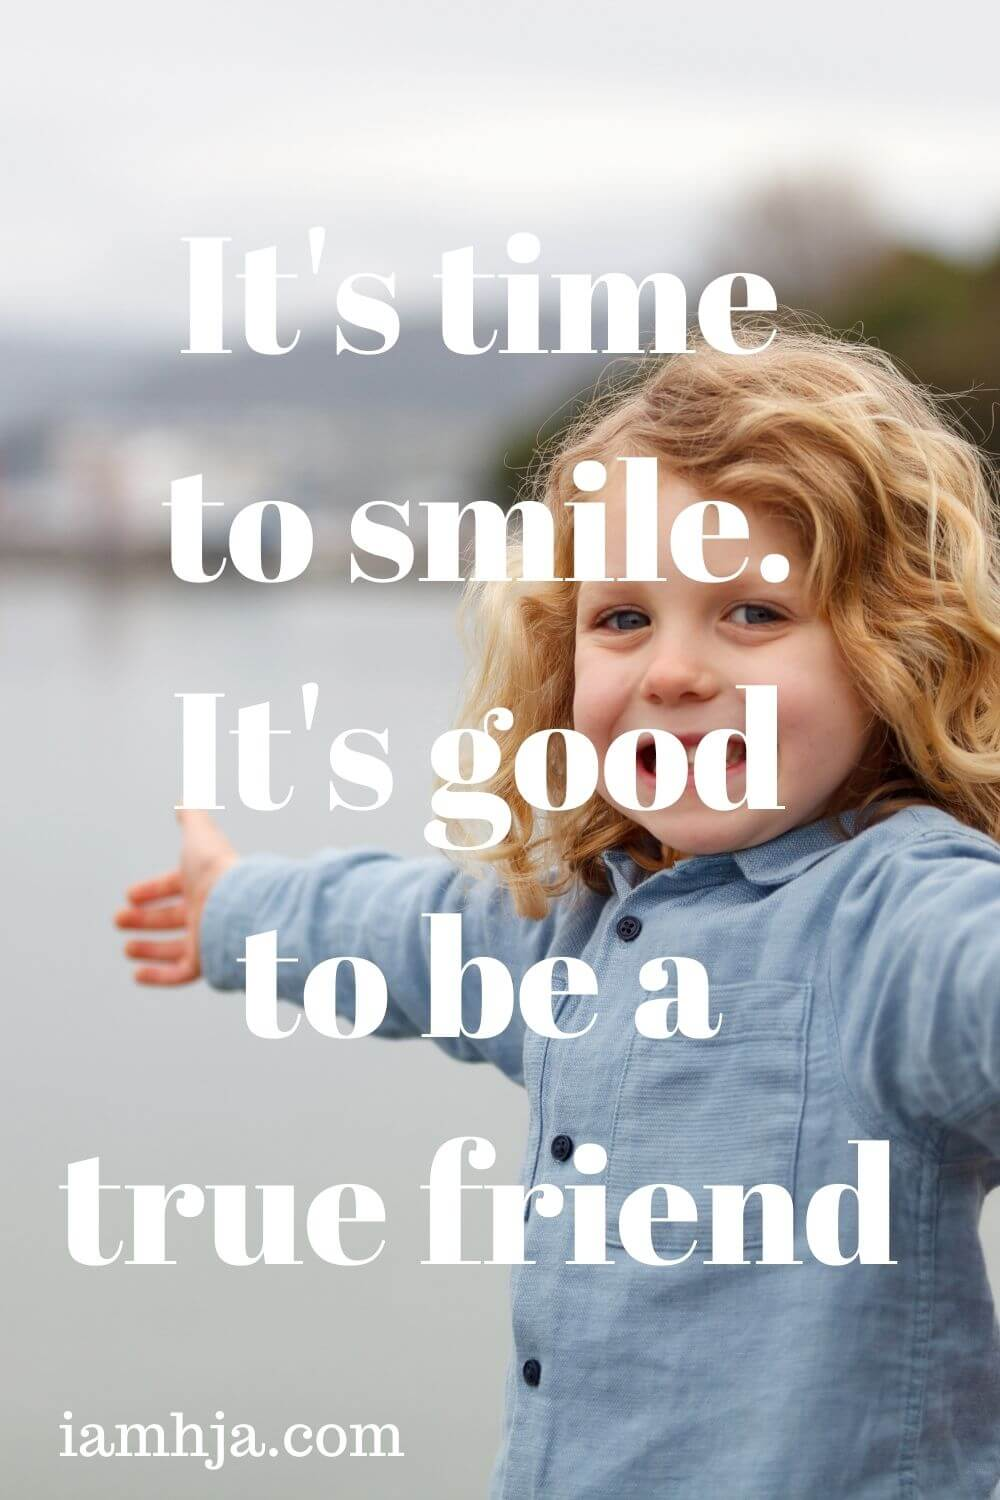 It's time to smile. It's good to be a true friend